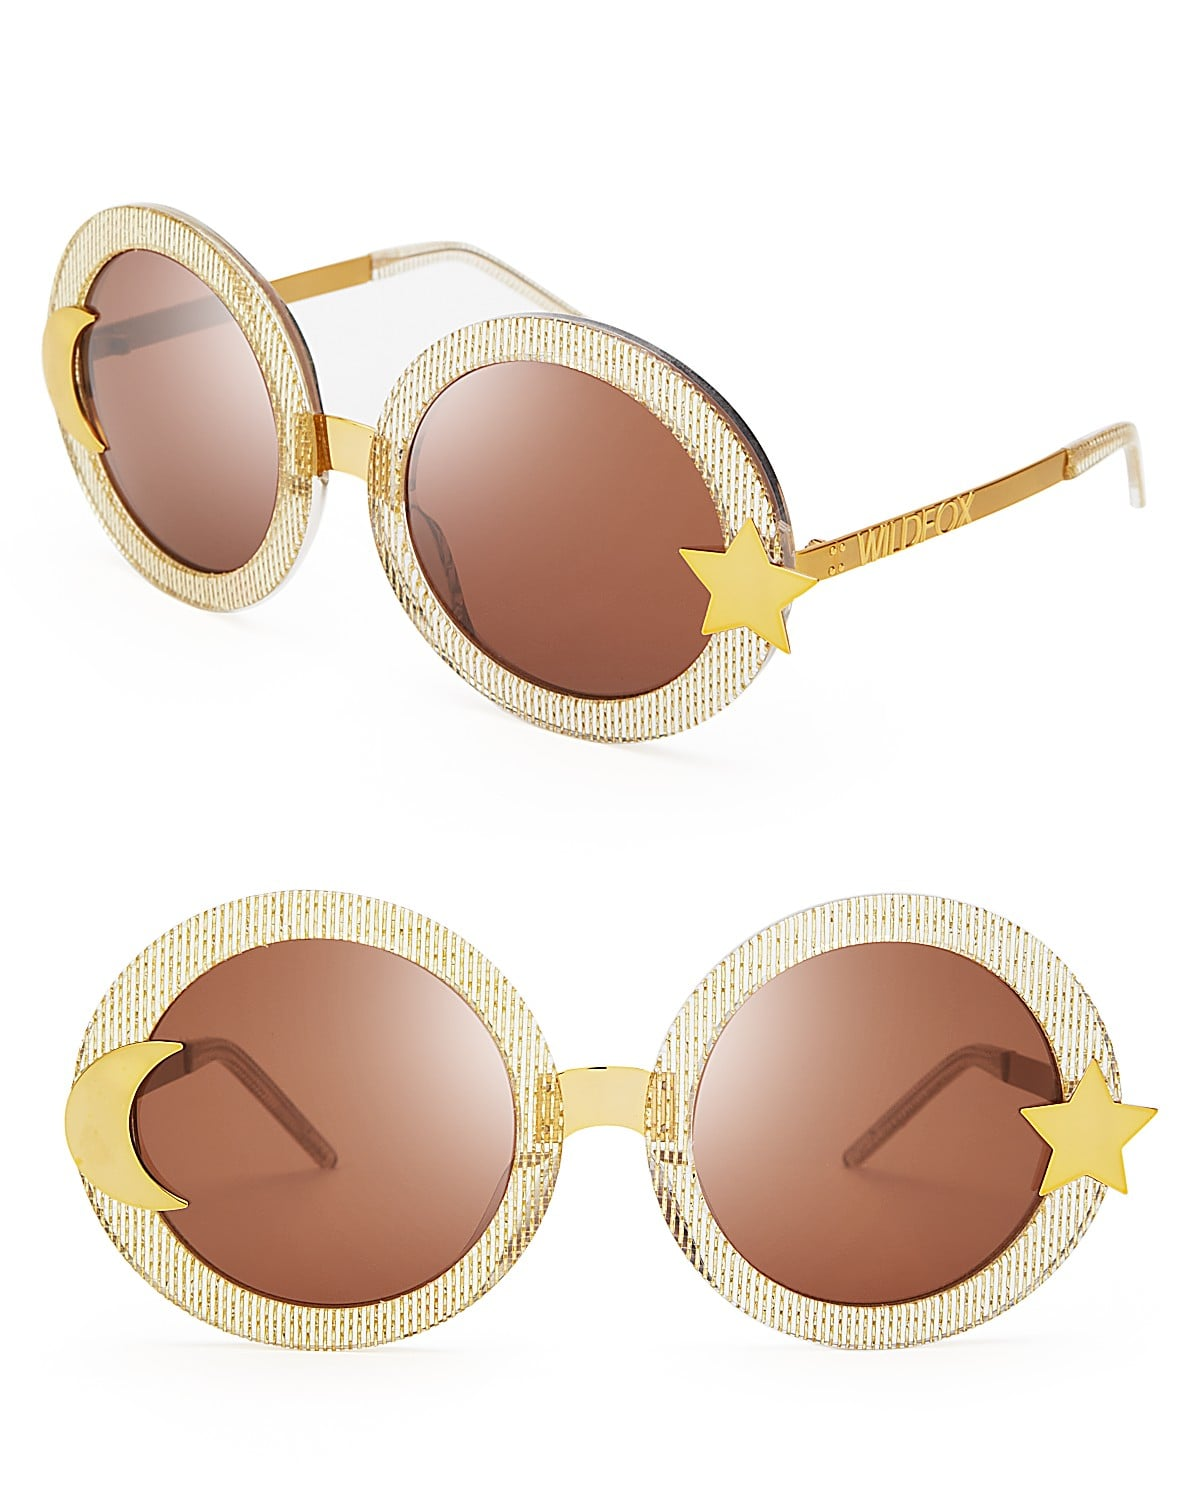 Sunglasses With the Moon and Stars